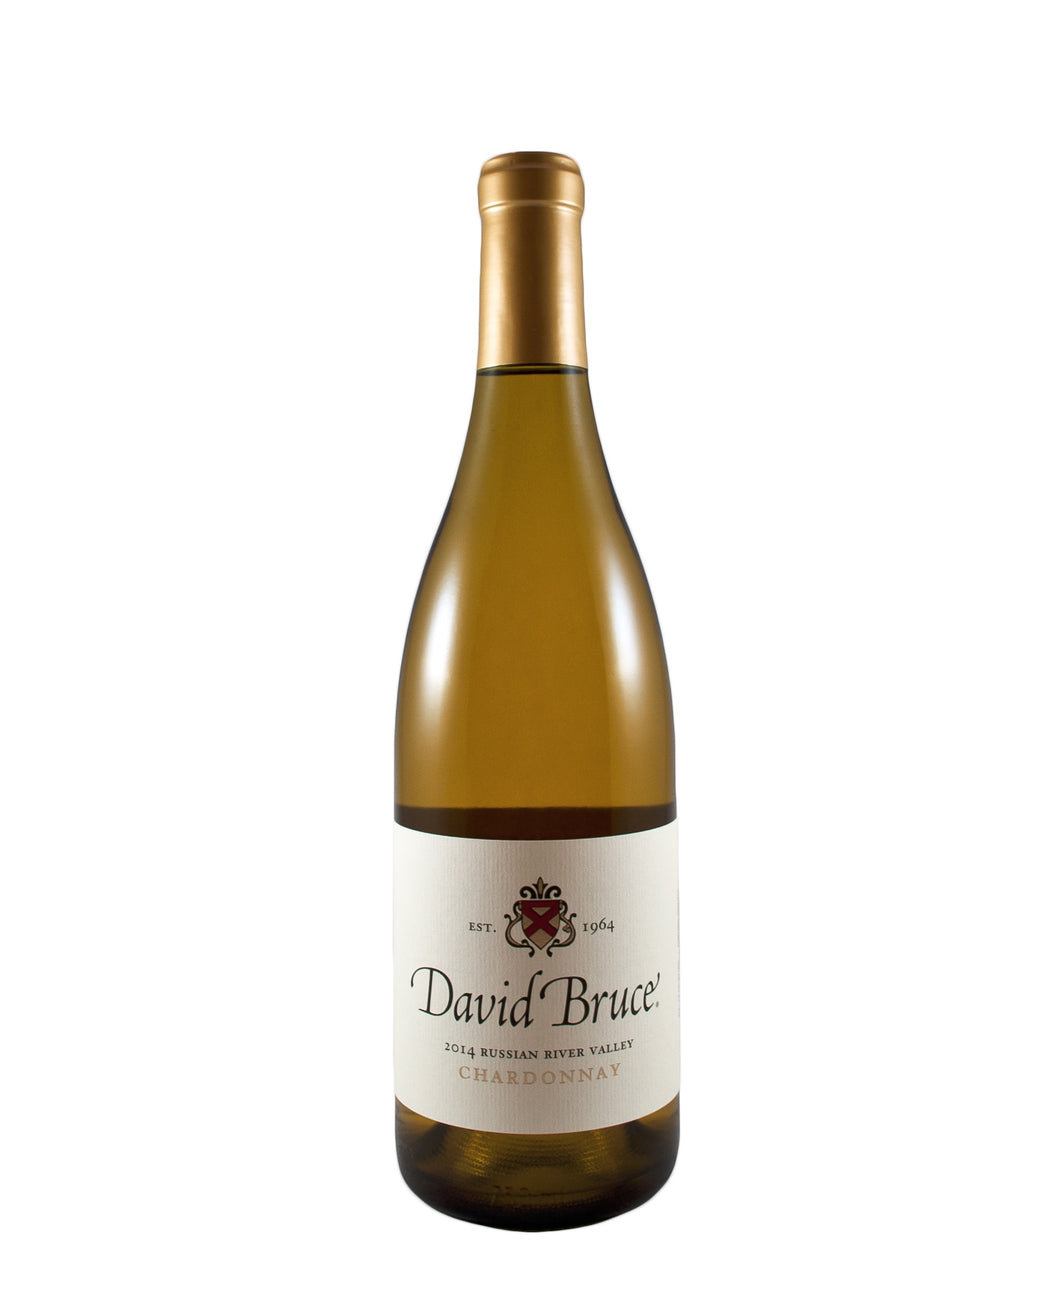 *9W* 2014 David Bruce Chardonnay (Russian River Valley, CA)